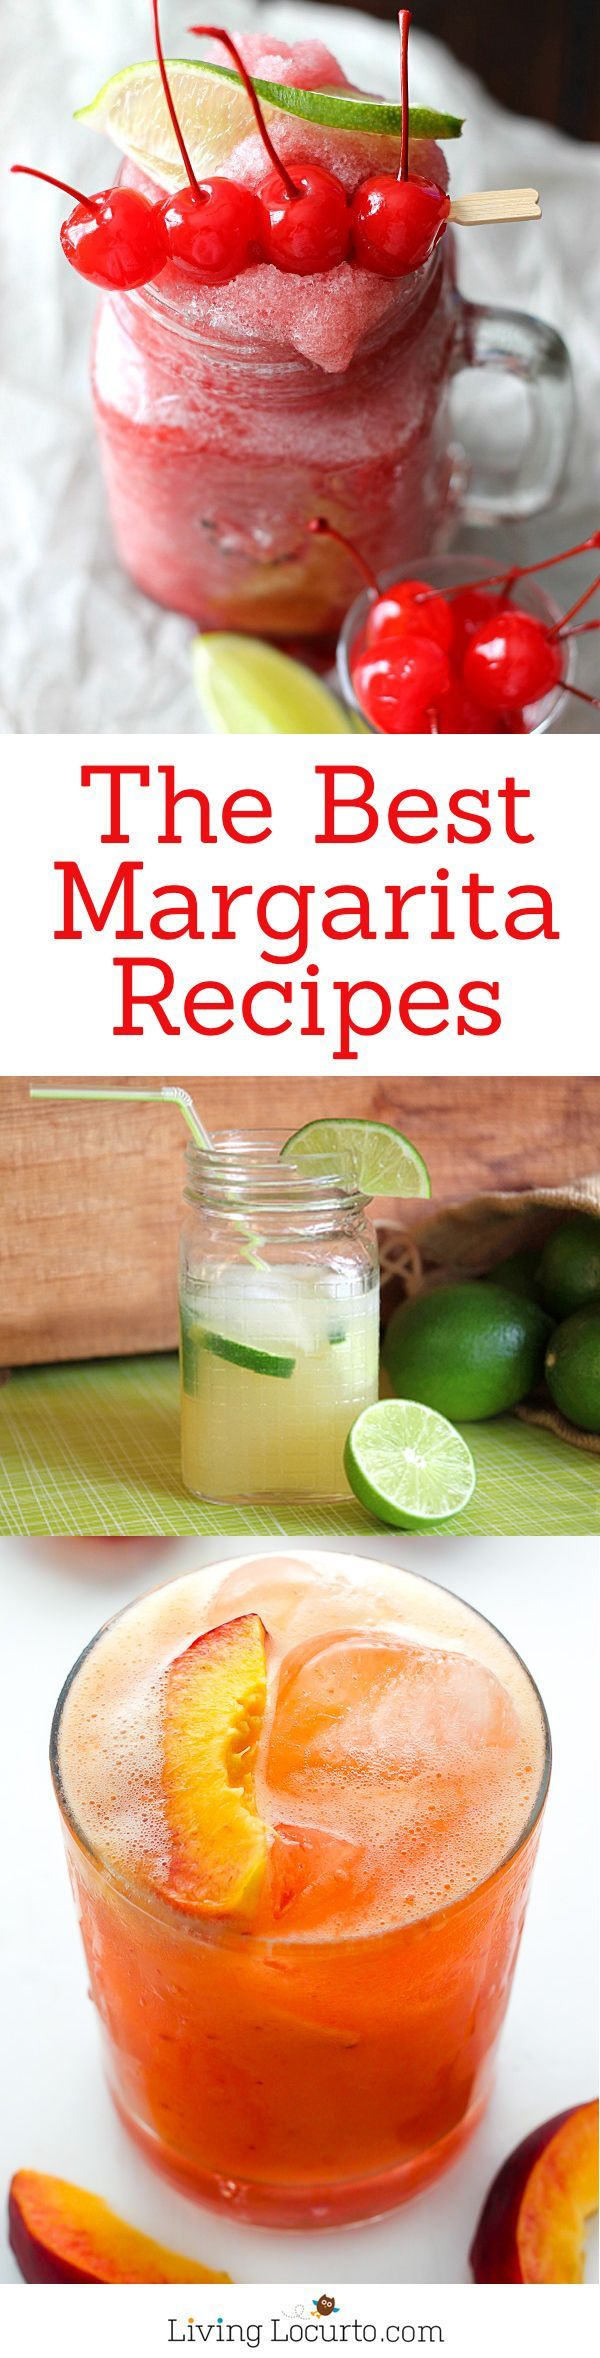 The Best Margarita Recipes ever! From Strawberry and Blackberry to Pineapple and Coconut, you'll find a frozen cocktail perfect for party drink or a hot summer day! LivingLocurto.com. Yummmm